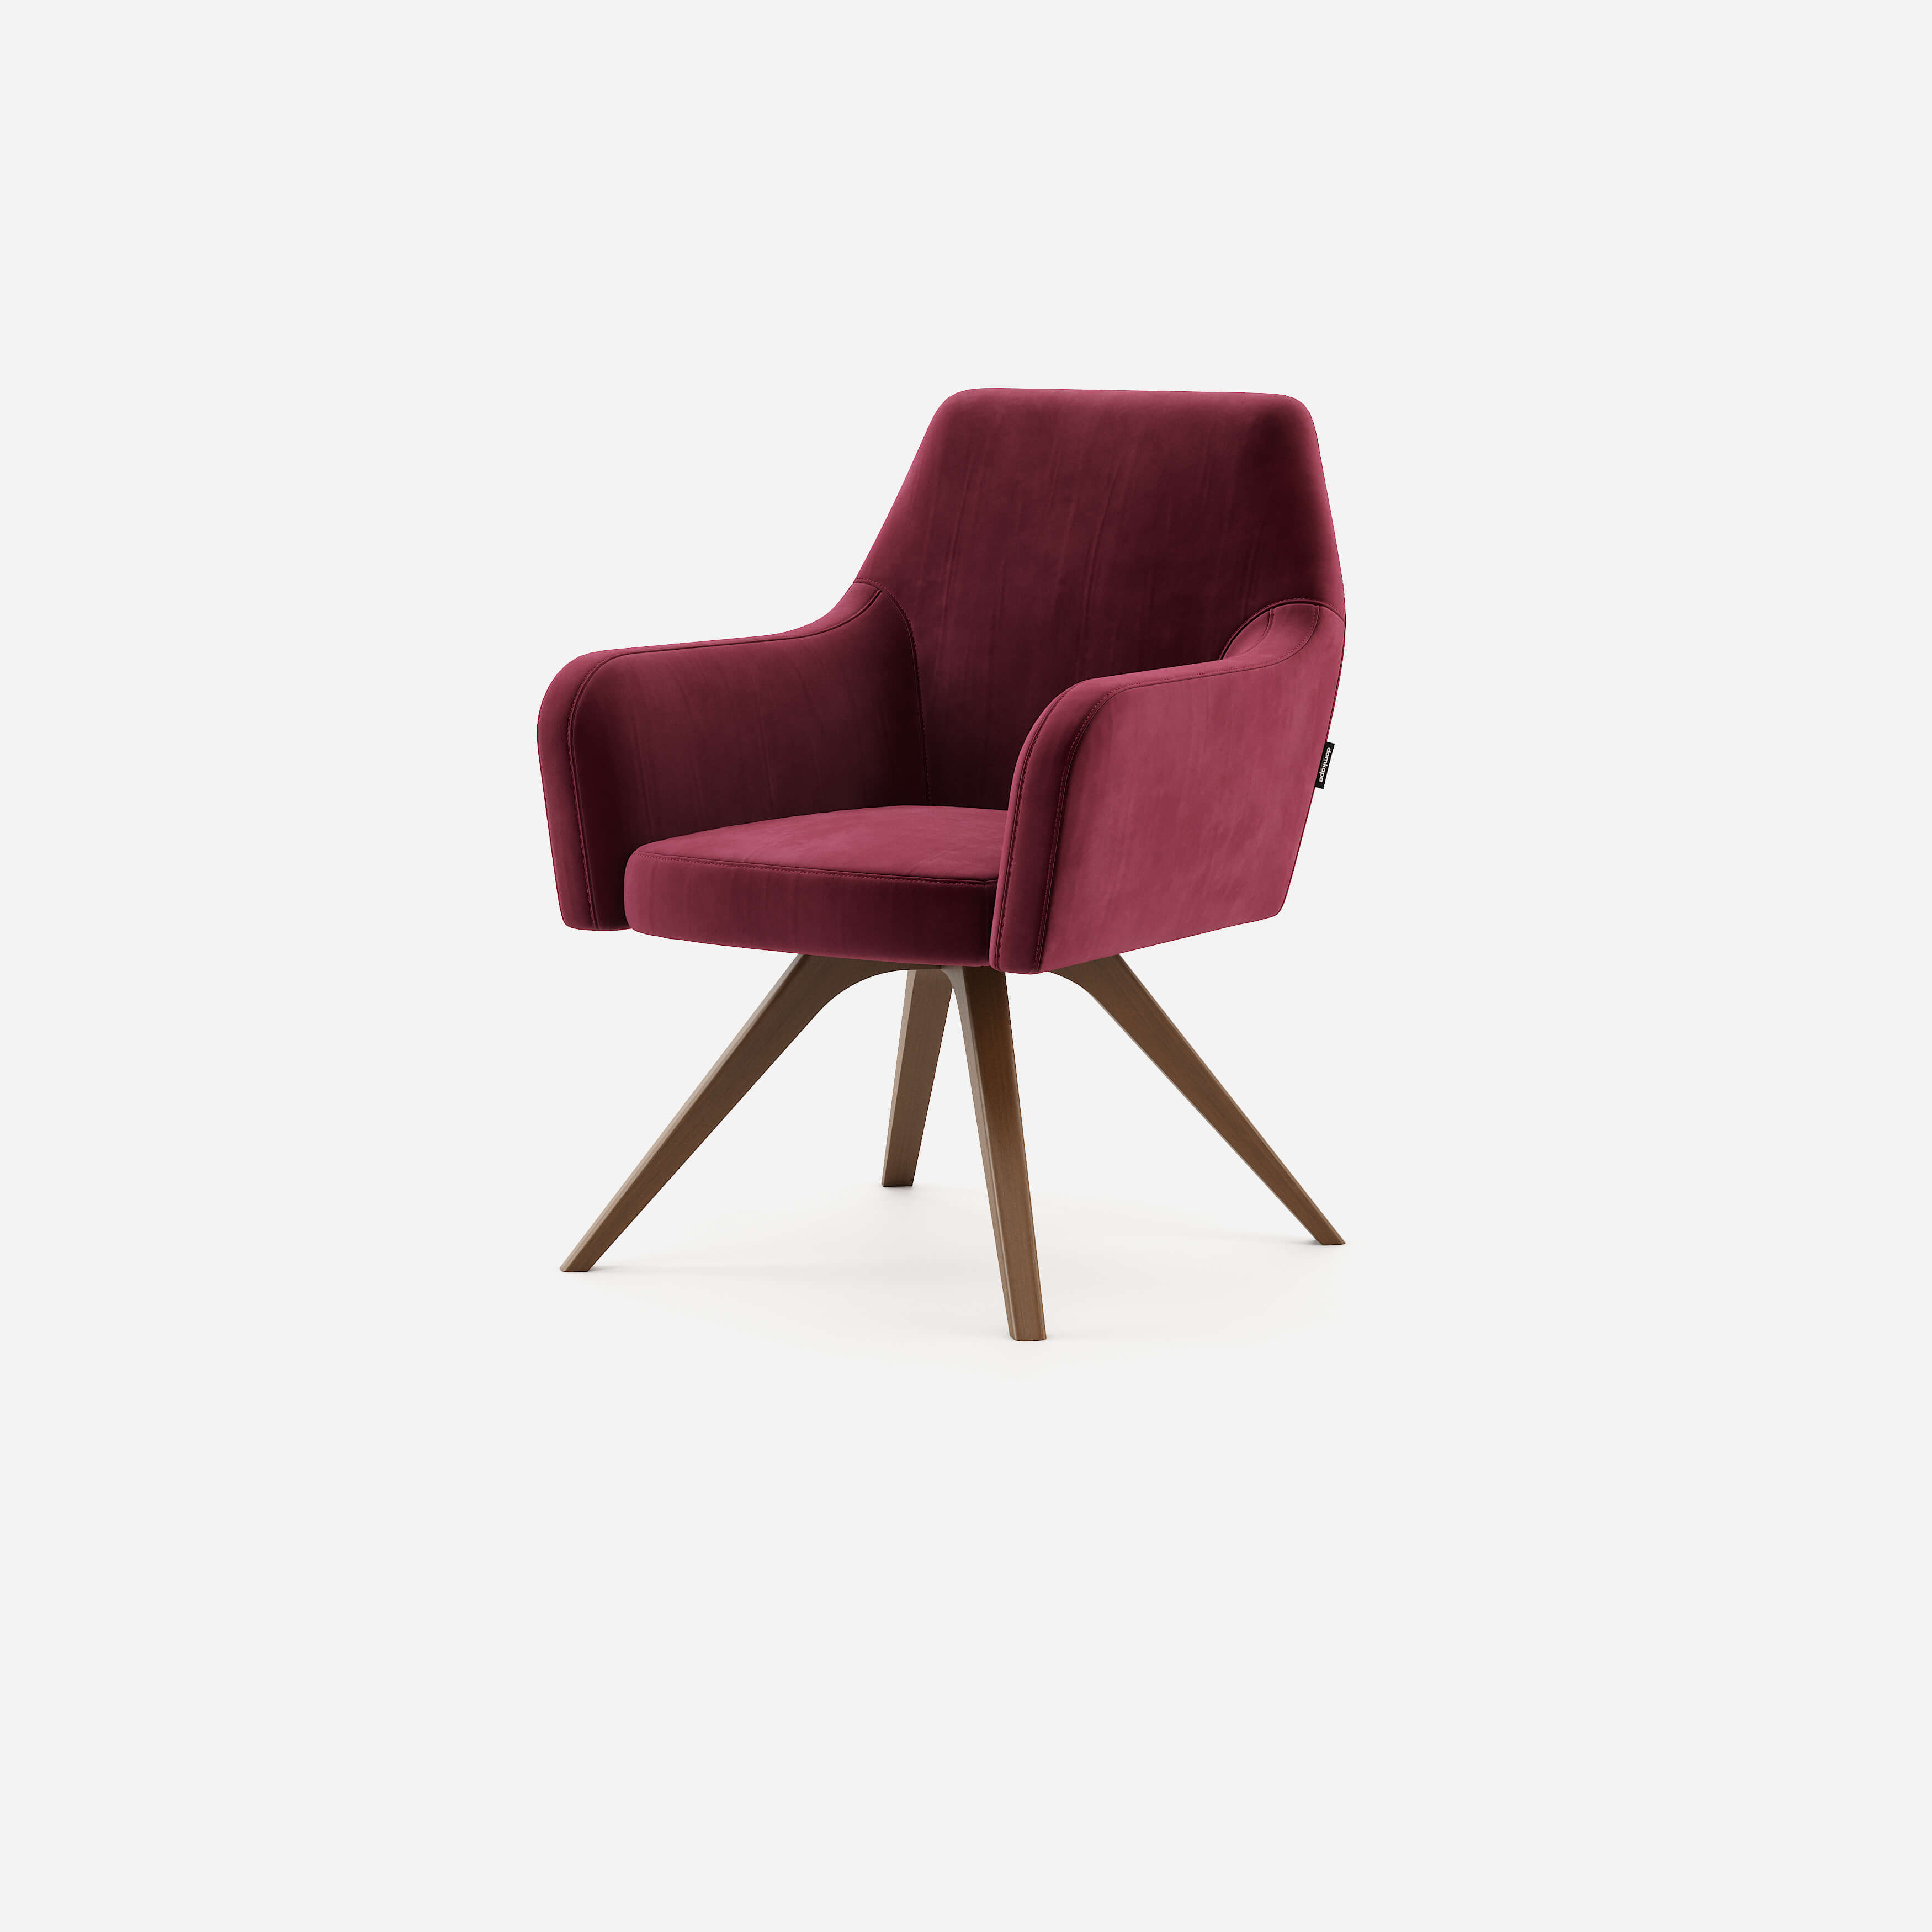 Alba Armchair by Domkapa | Elemental collection - Design Meets Comfort